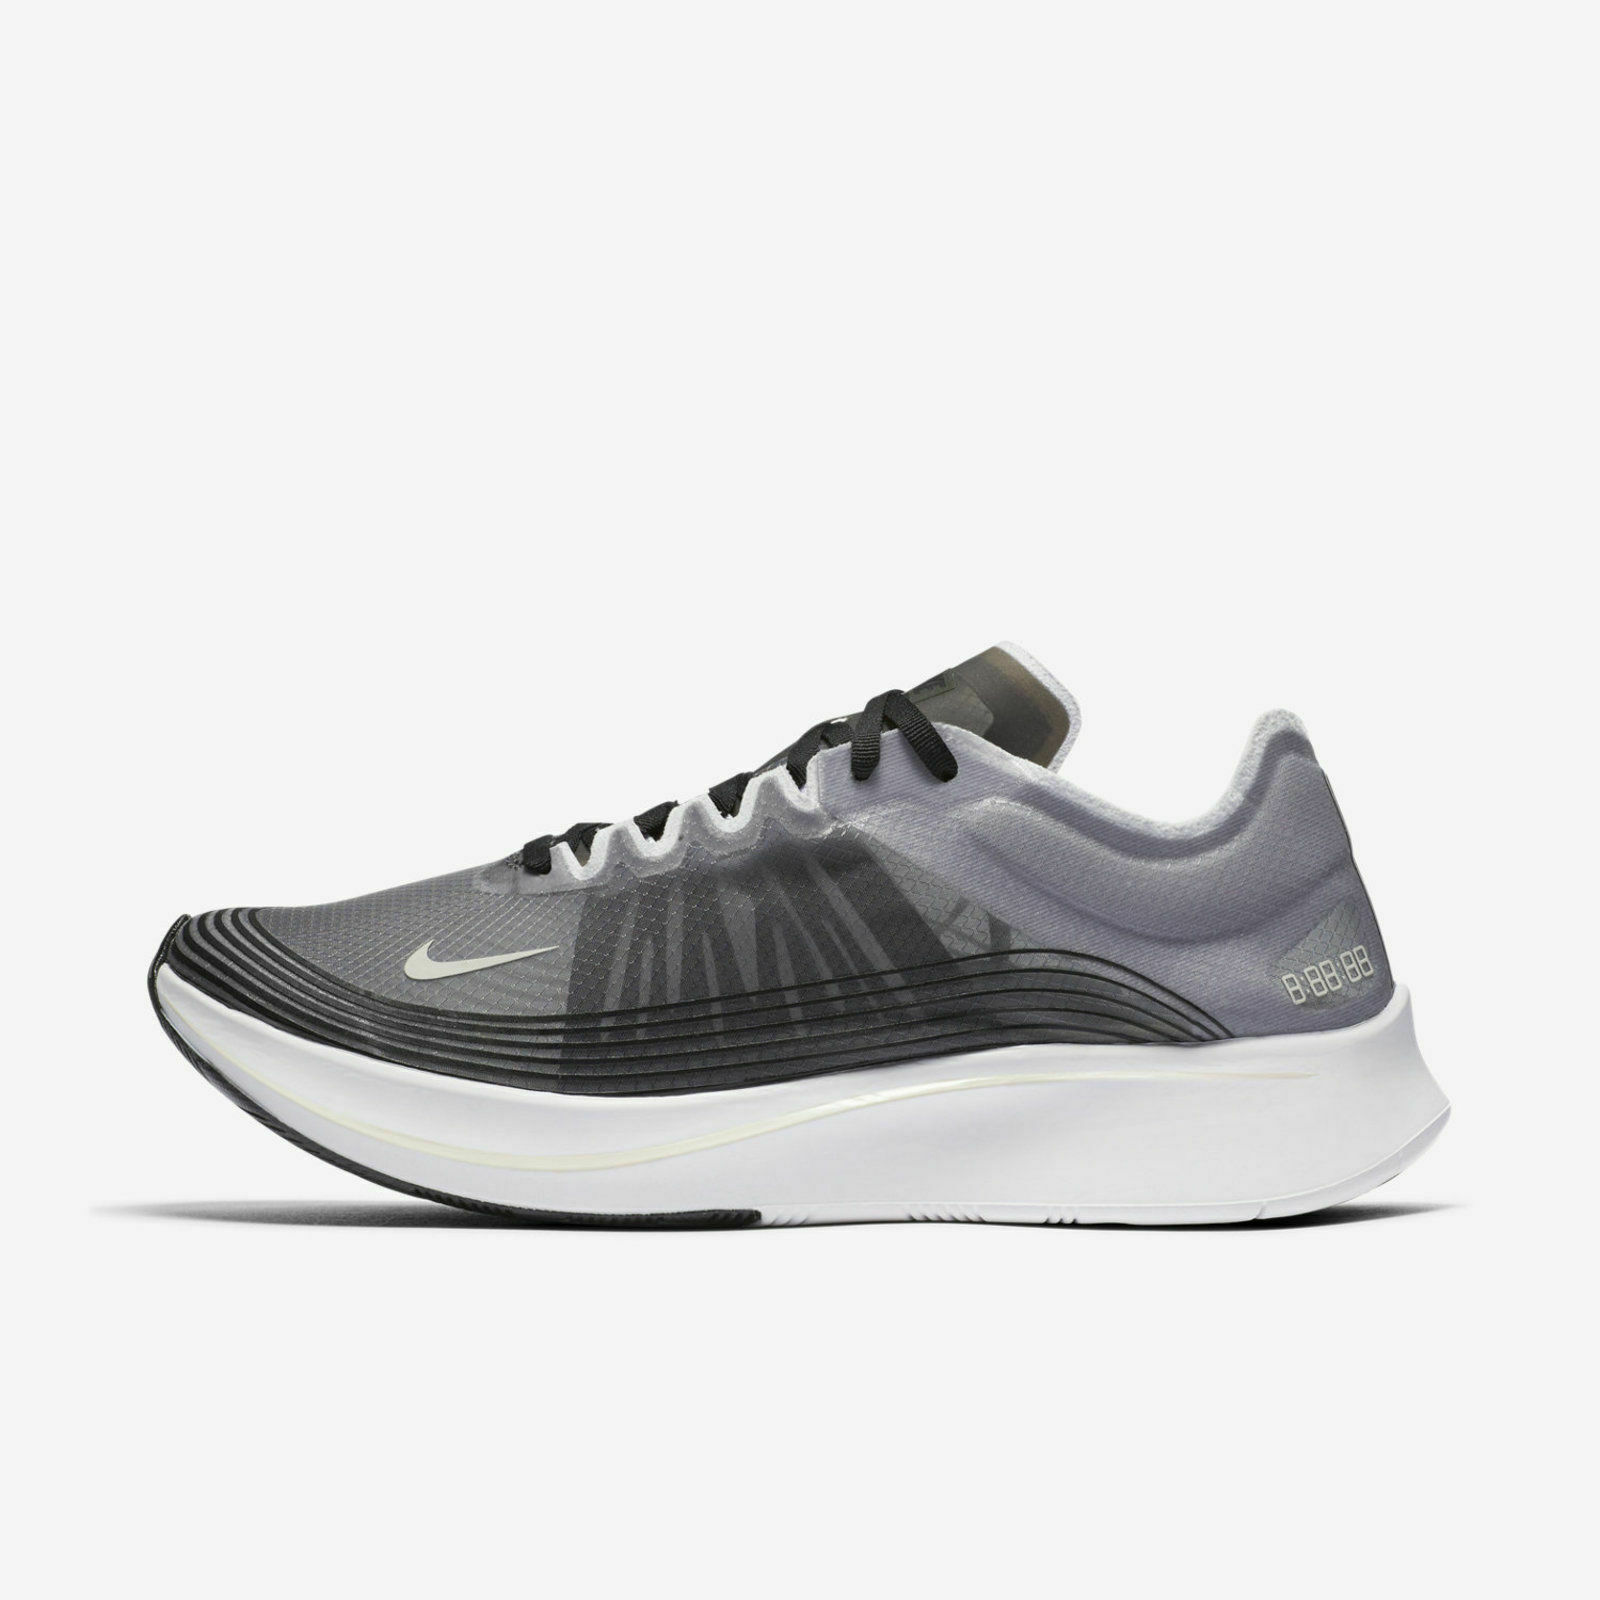 50056c3923f88 Nike Nikelab Zoom Fly SP Mens Size 11 Running shoes shoes shoes Black White  AJ9282 001 ...